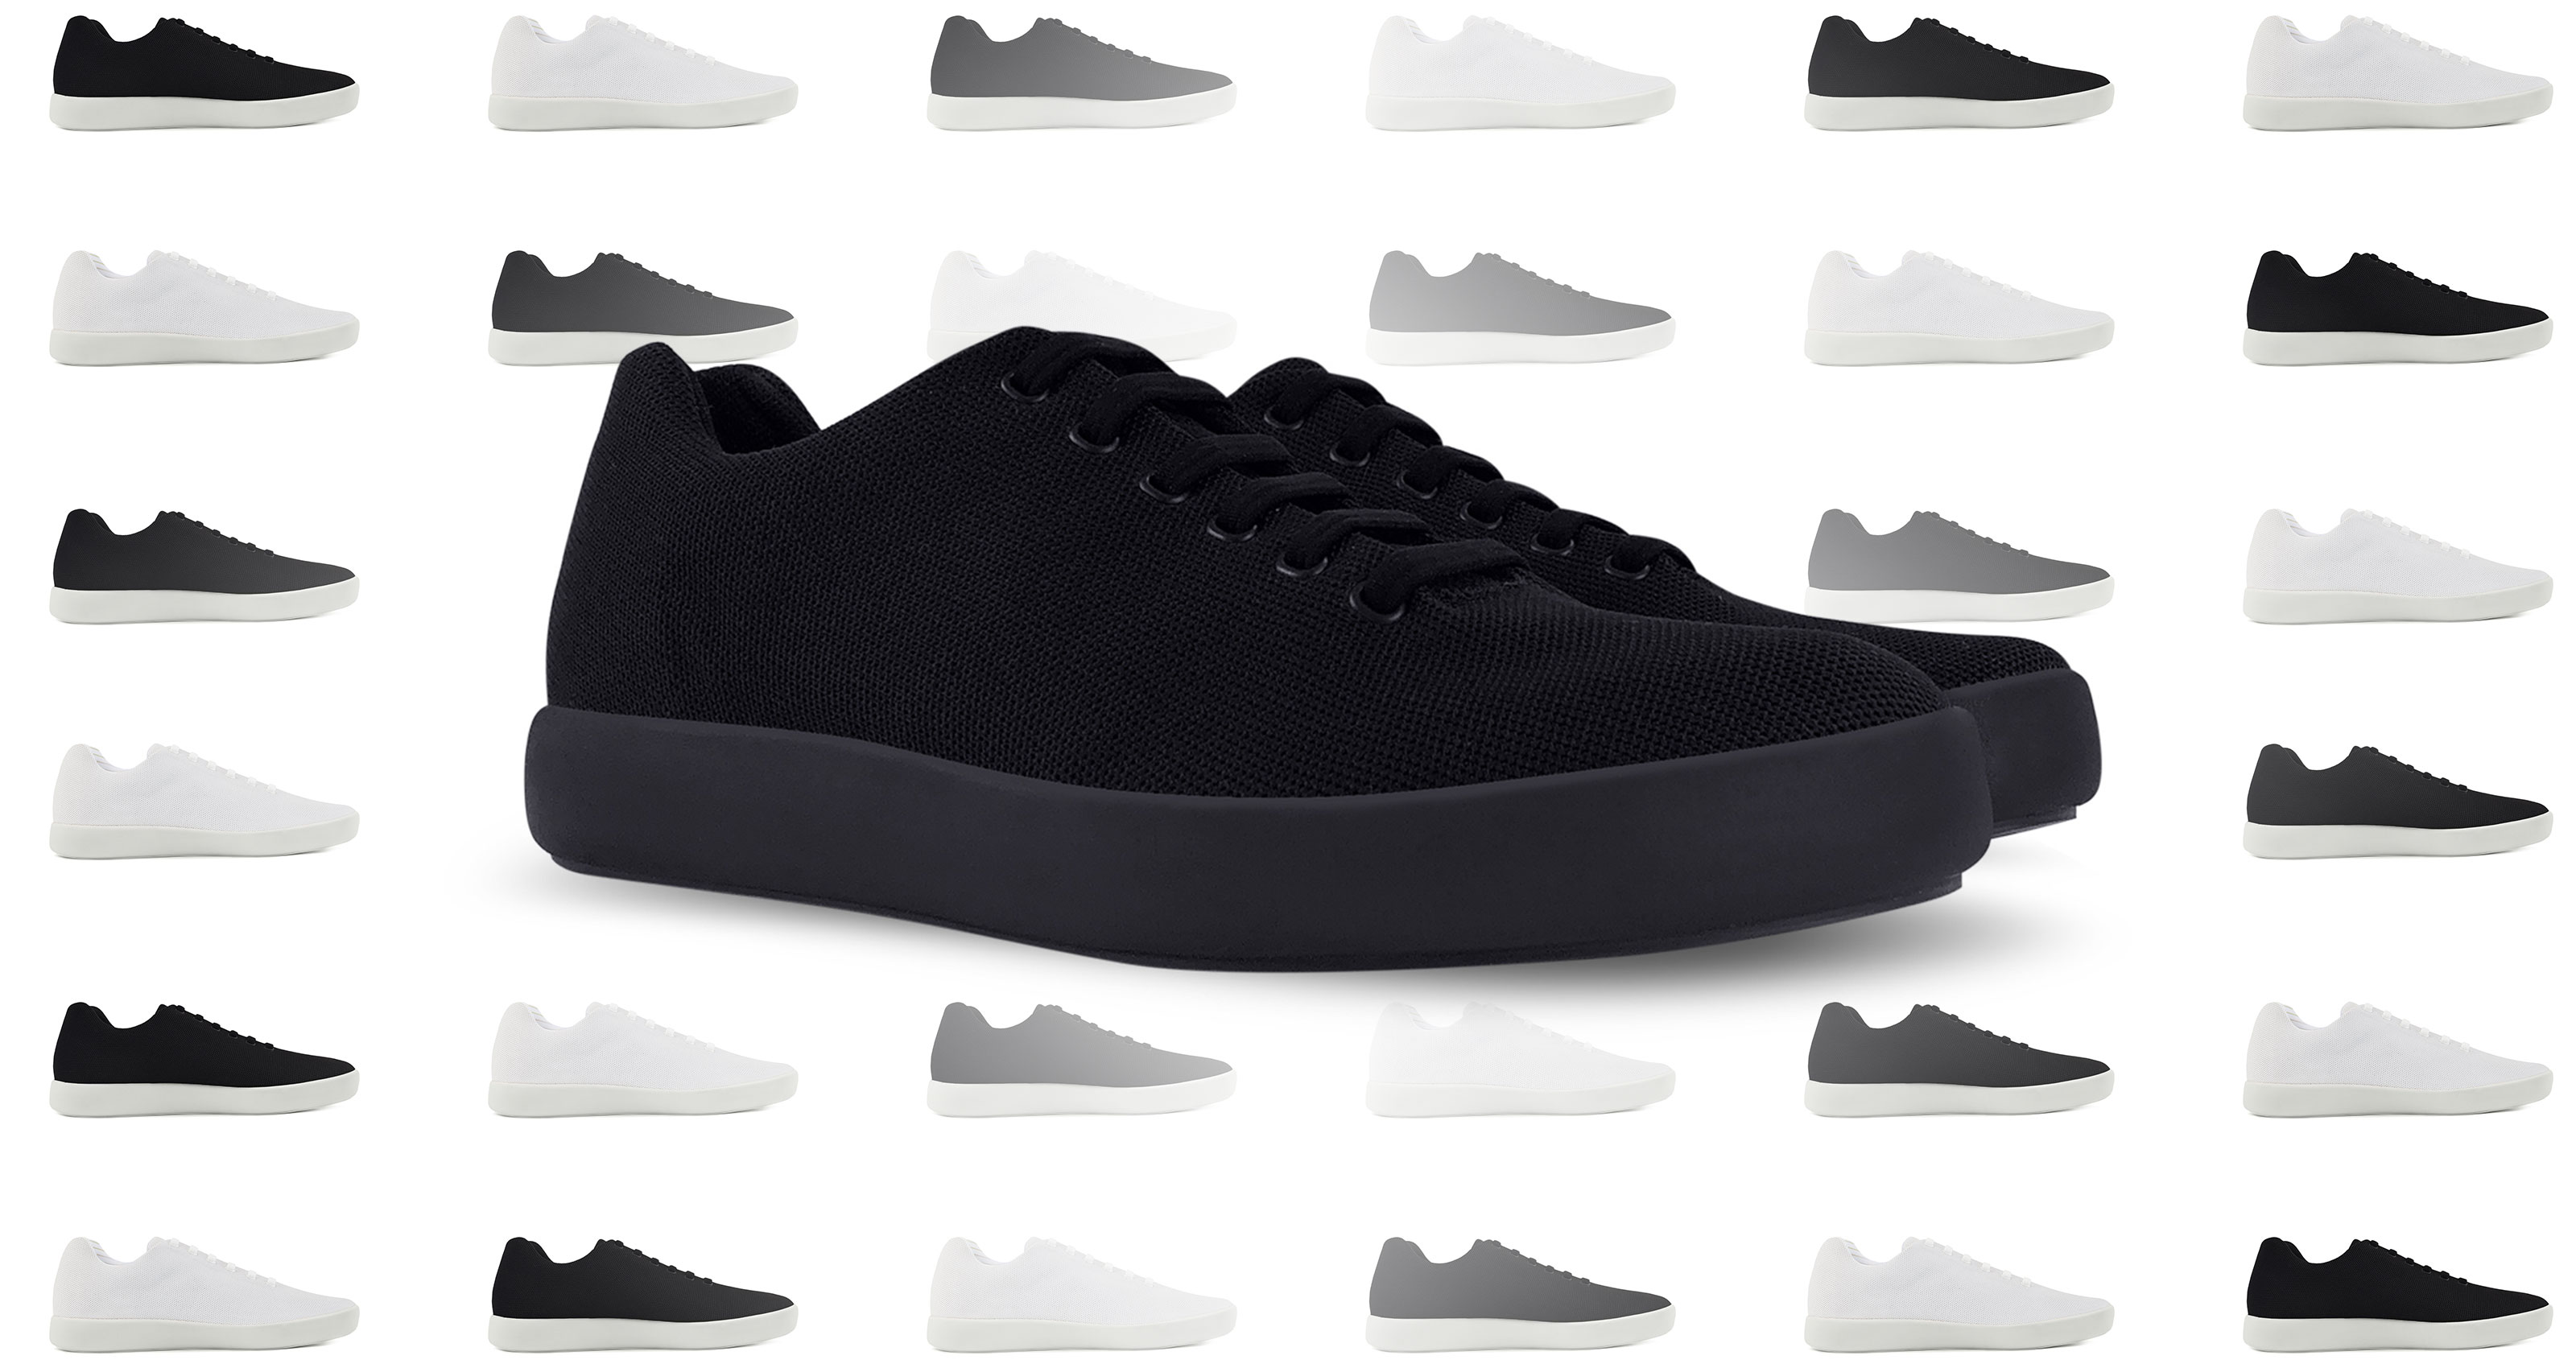 Meet Atoms, the minimalist startup shoes you'll actually